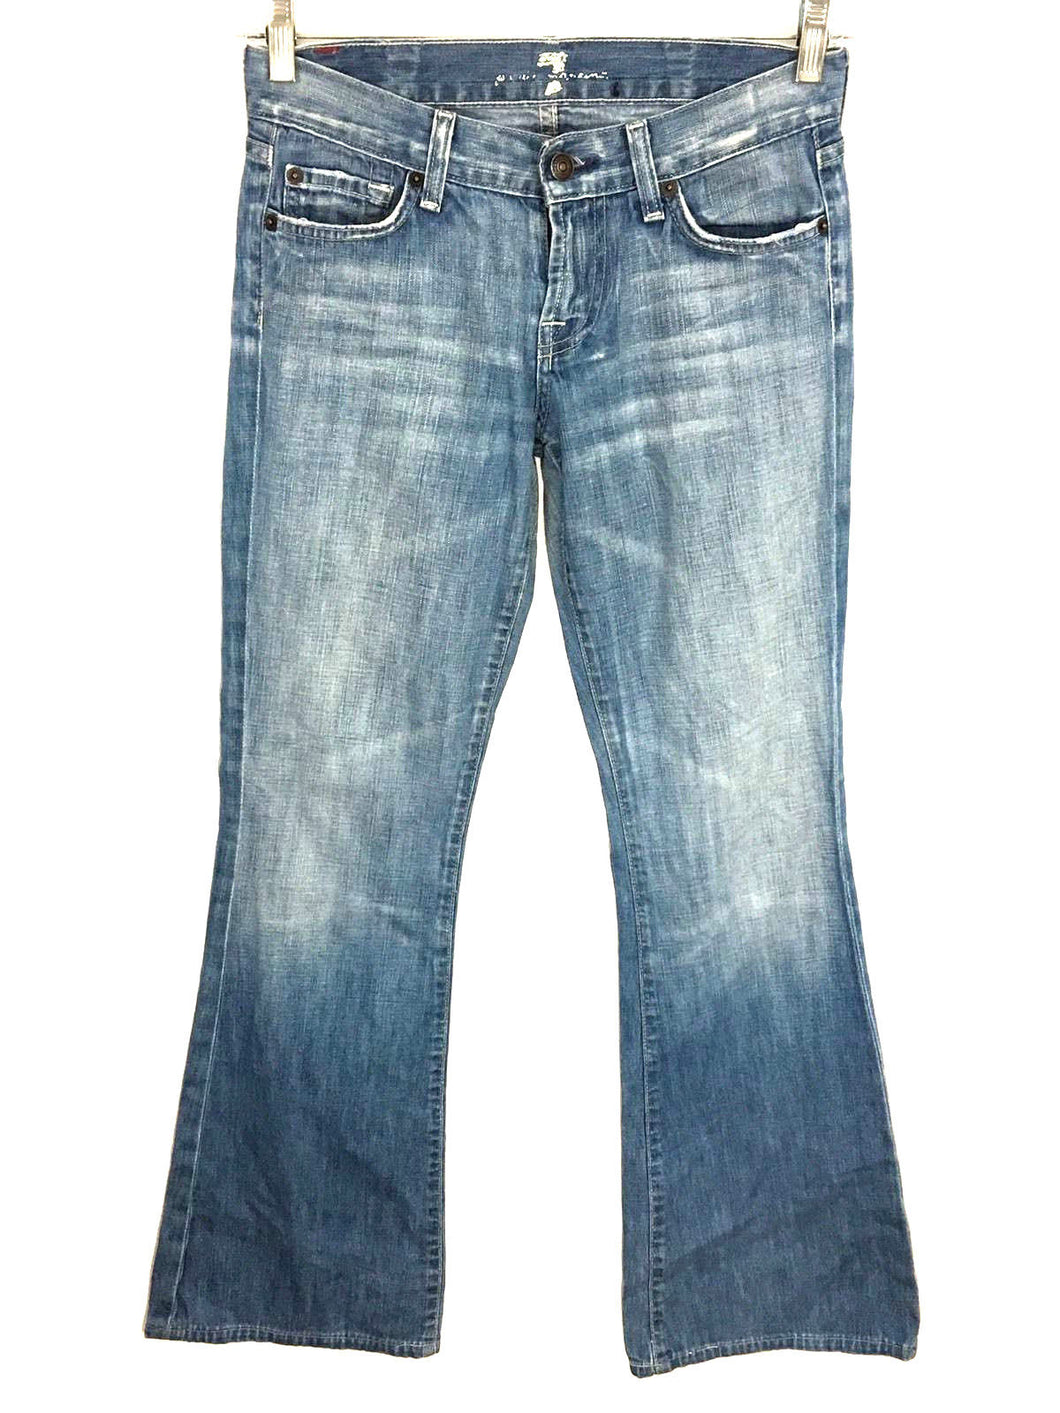 7 For All Mankind Light Wash Flare Leg Women's Jeans Size 26 Actual 27x31 - Preowned - FunkyCrap Boutique